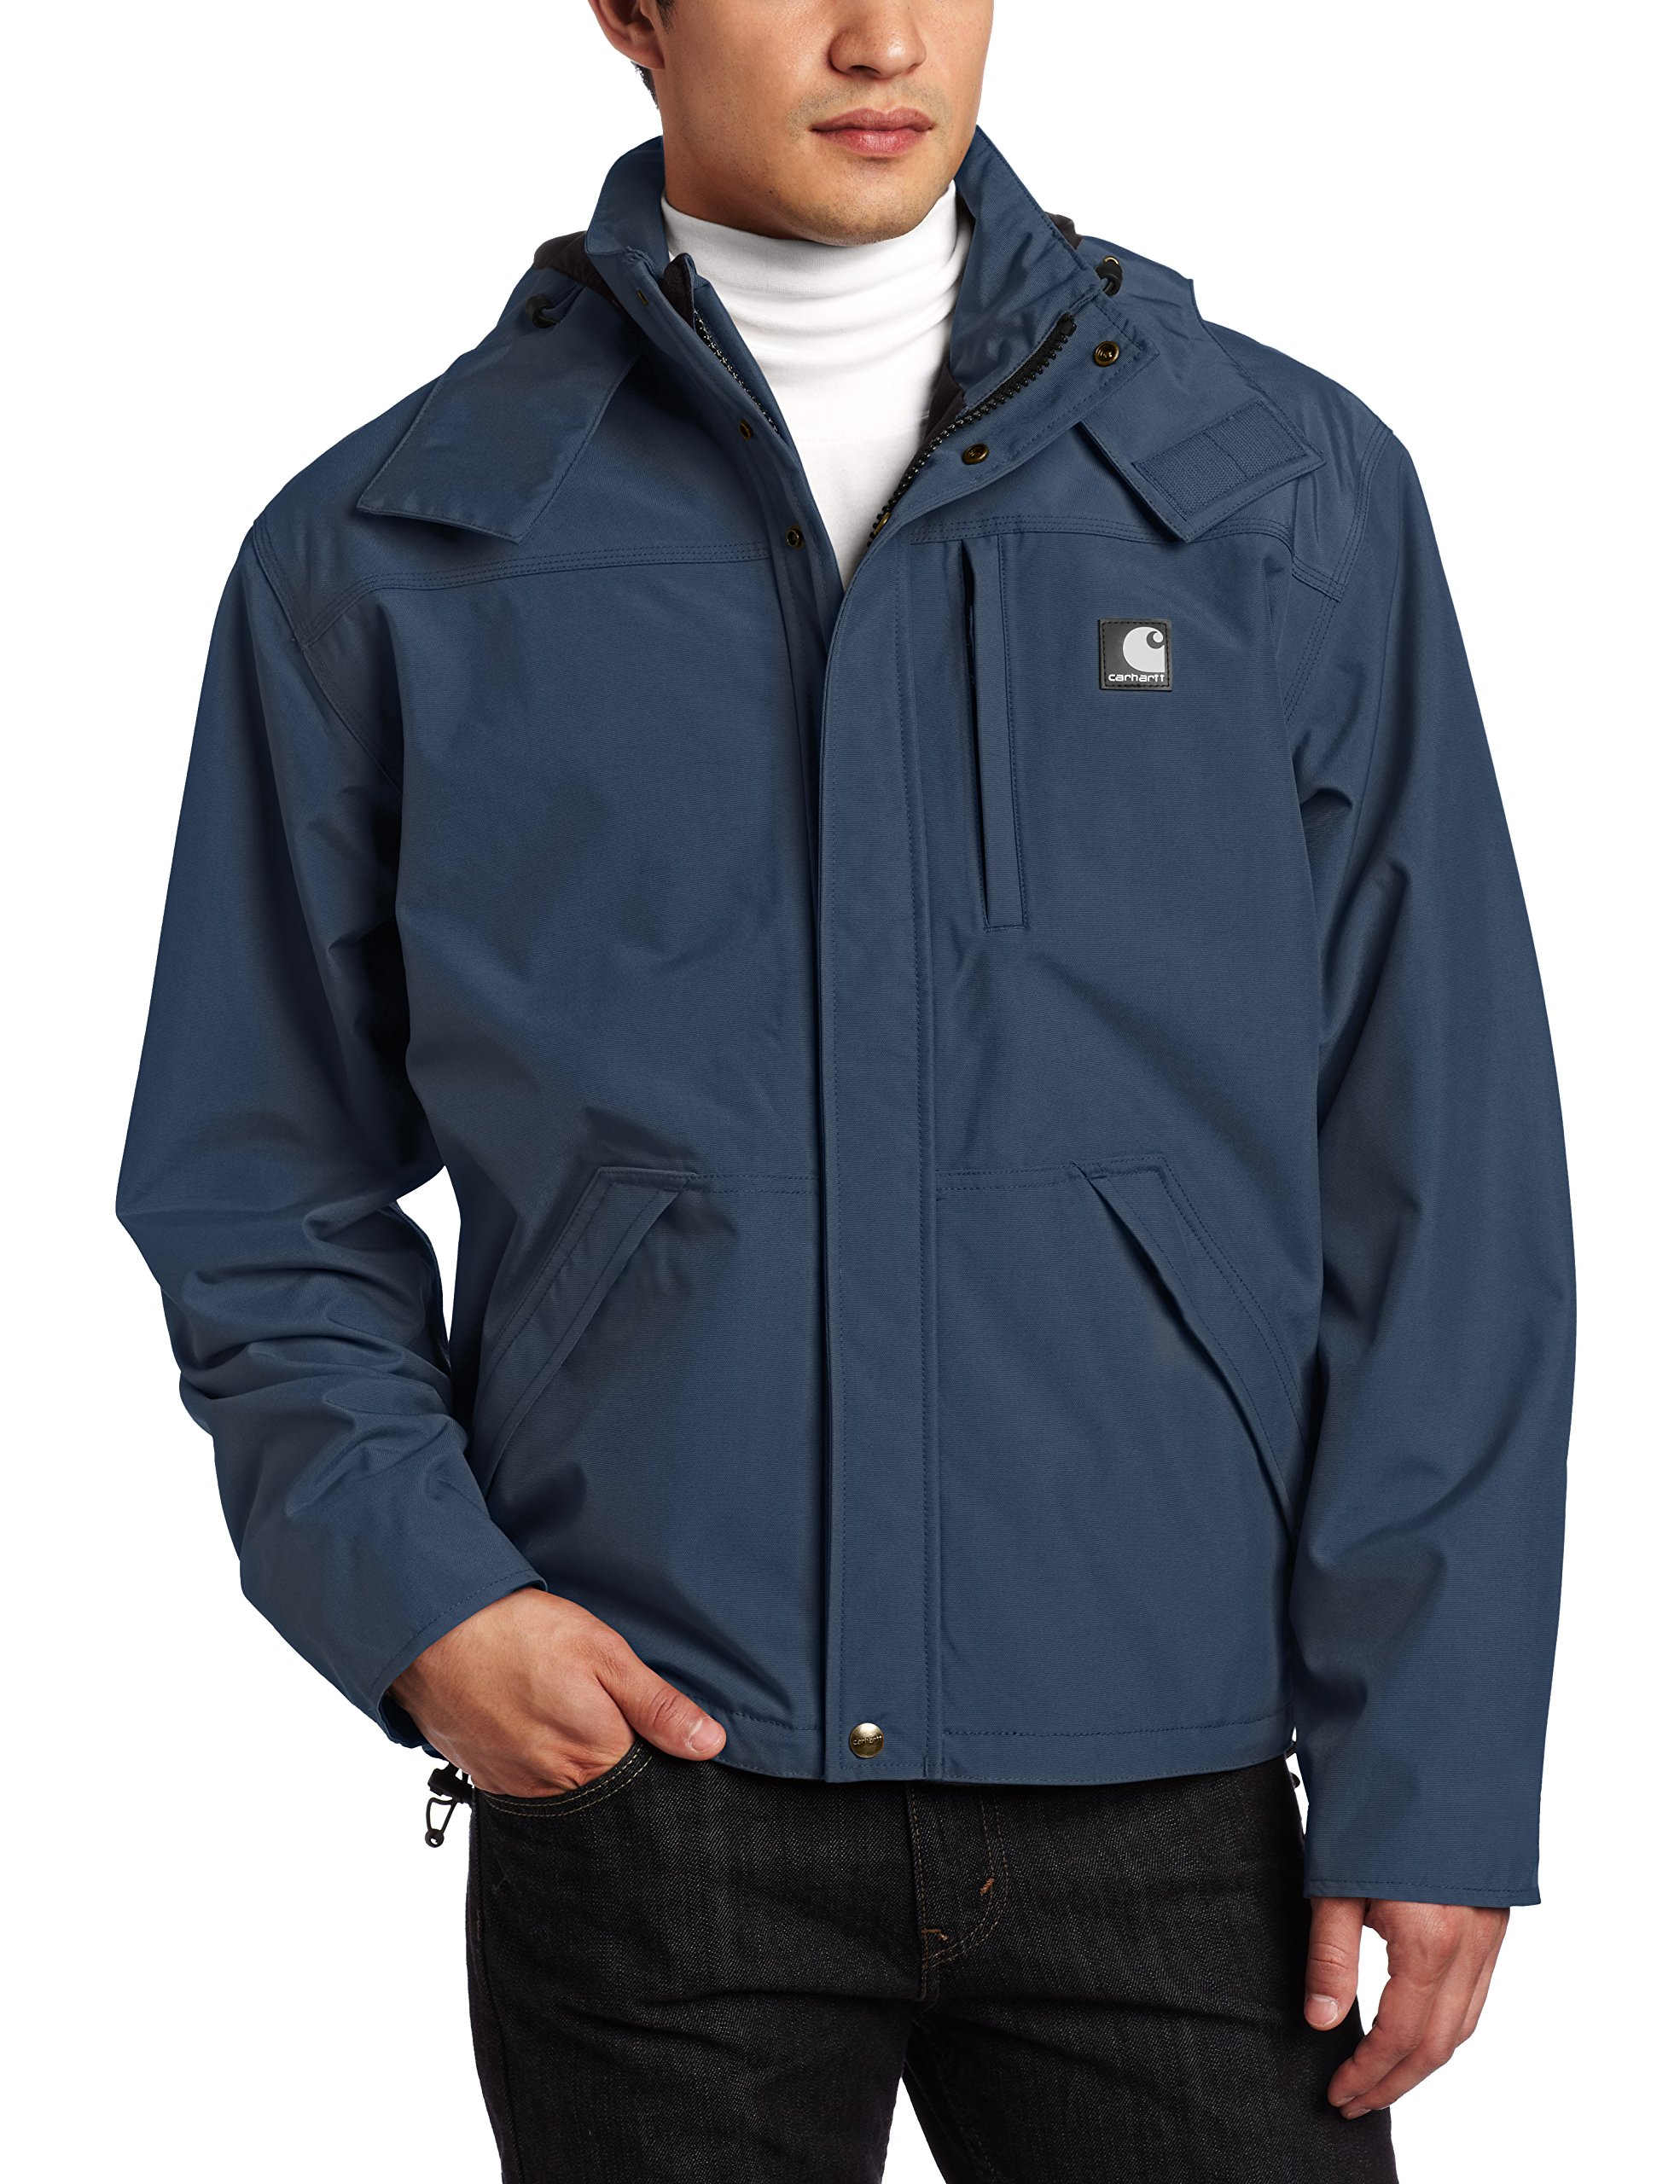 Carhartt Men's Shoreline Jacket Waterproof Breatheable Nylon, Navy, Medium by Carhartt